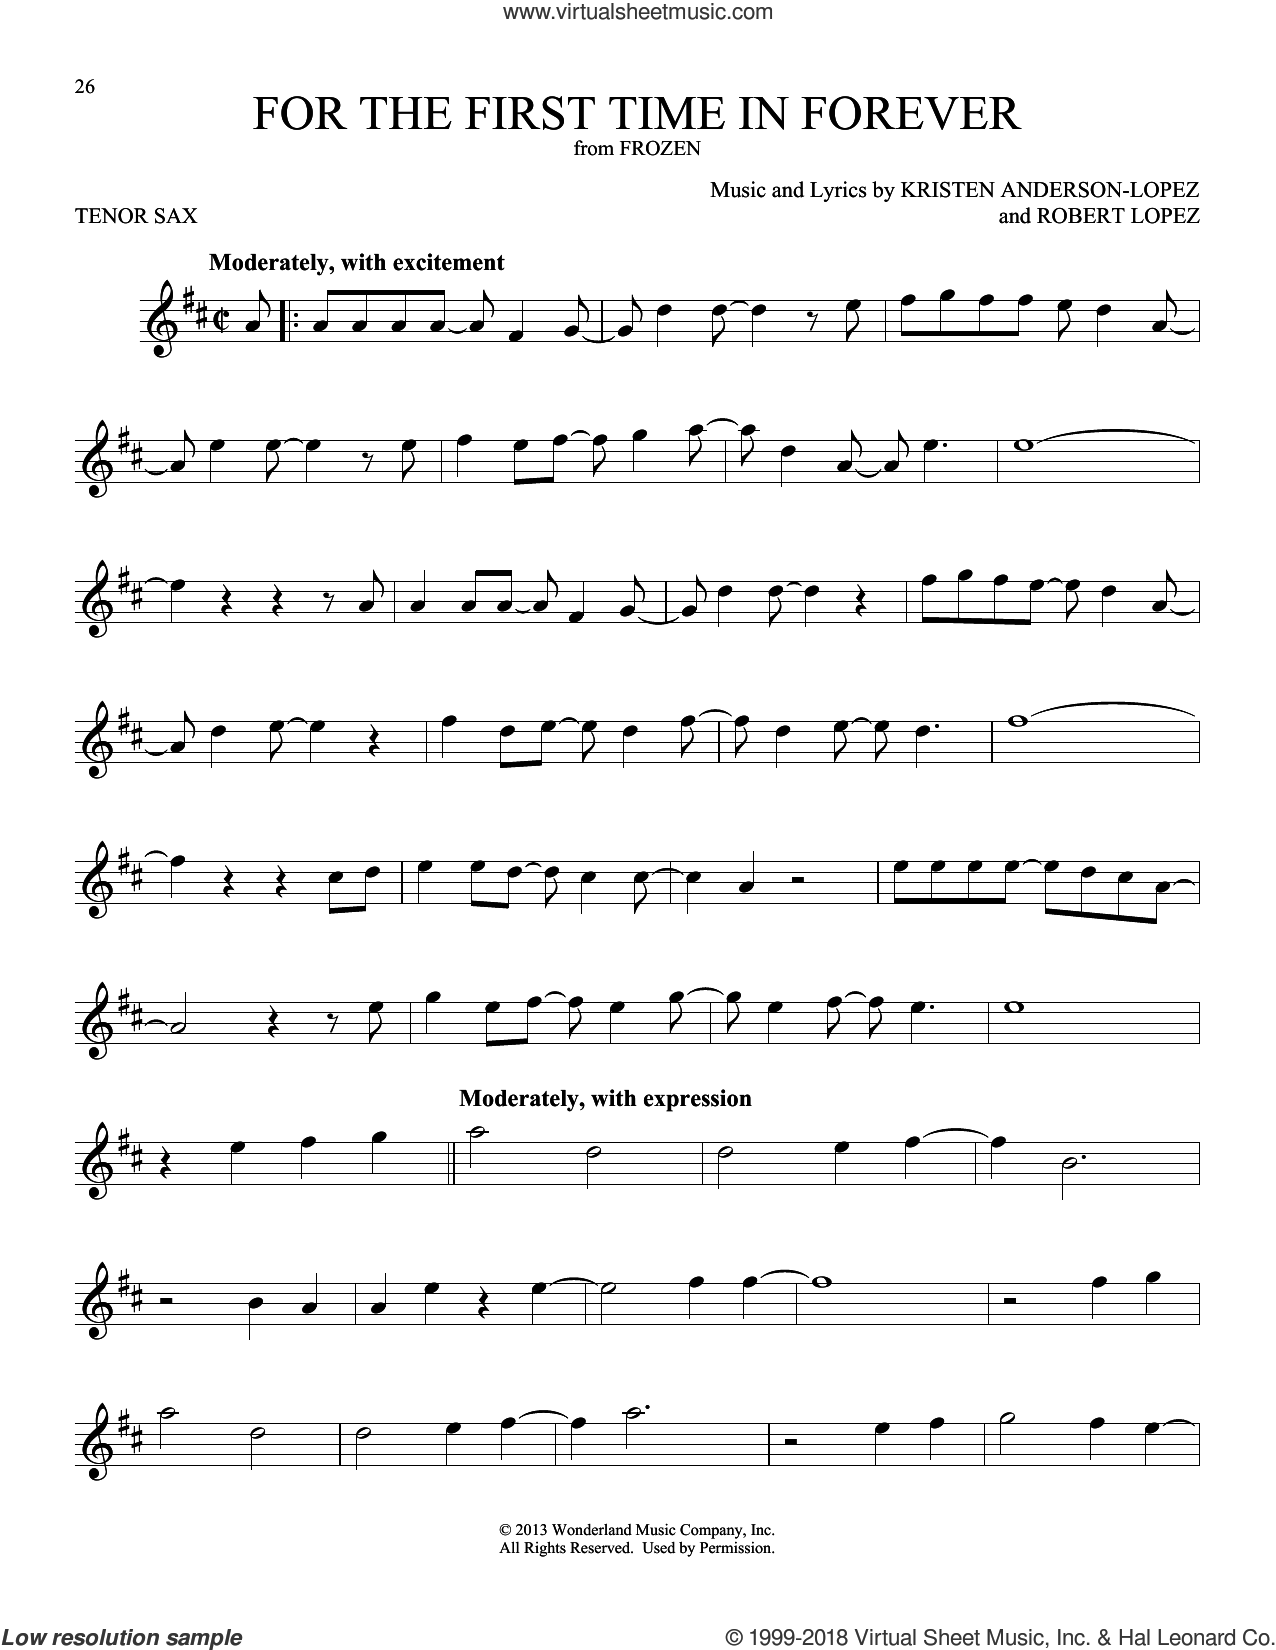 For The First Time In Forever (from Disney's Frozen) sheet music for tenor saxophone solo by Kristen Bell, Idina Menzel, Kristen Anderson-Lopez and Robert Lopez, intermediate skill level